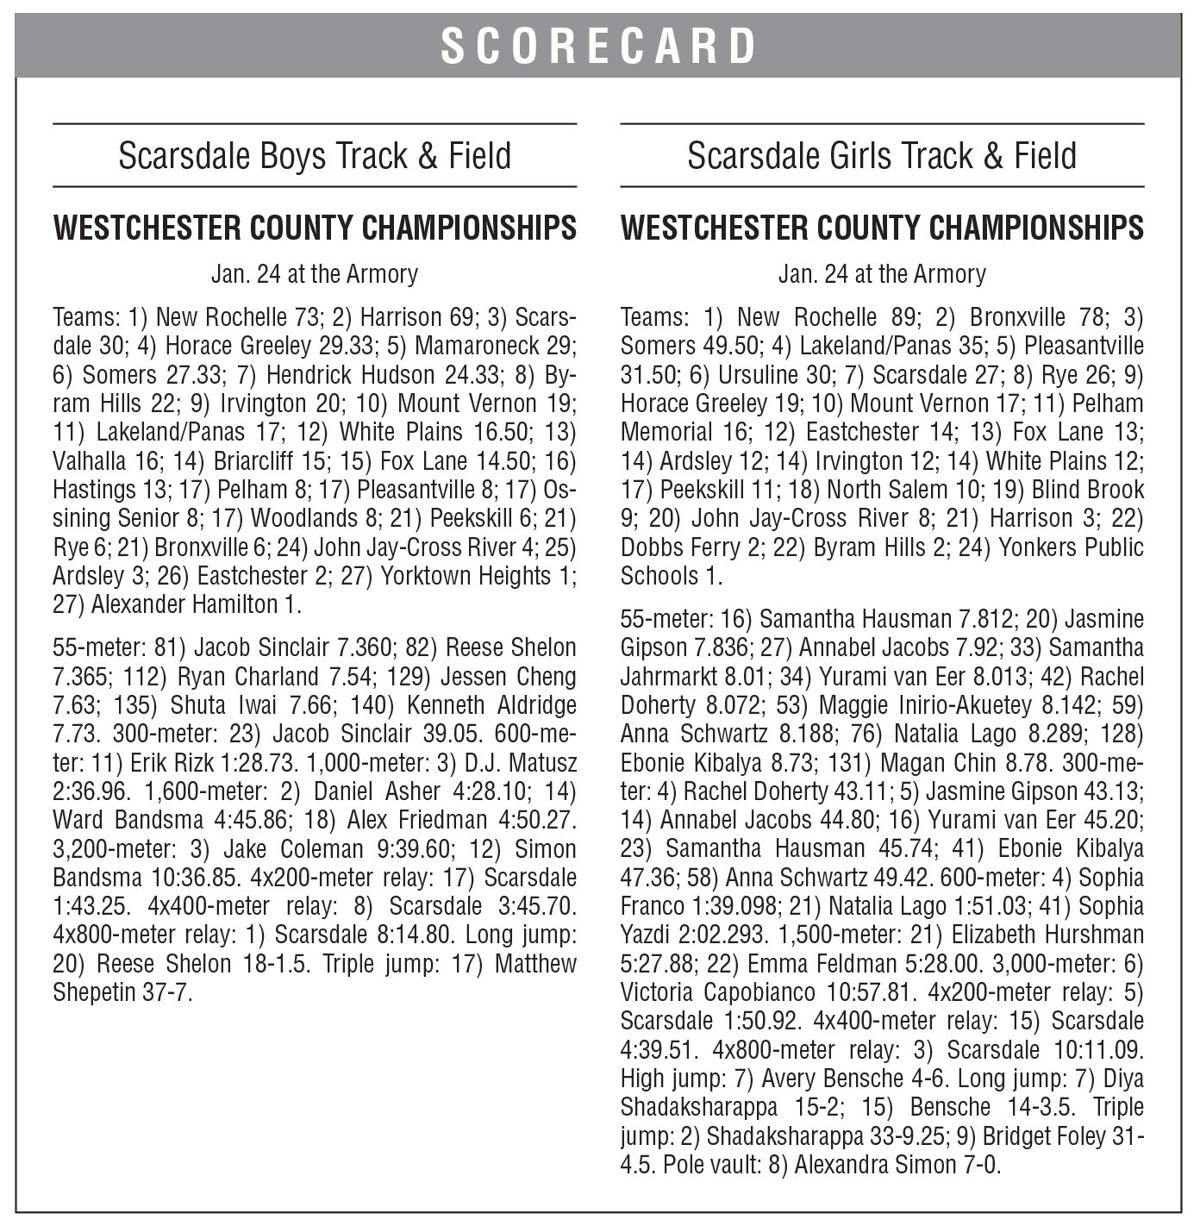 Scarsdale track boxscore 1/31 issue